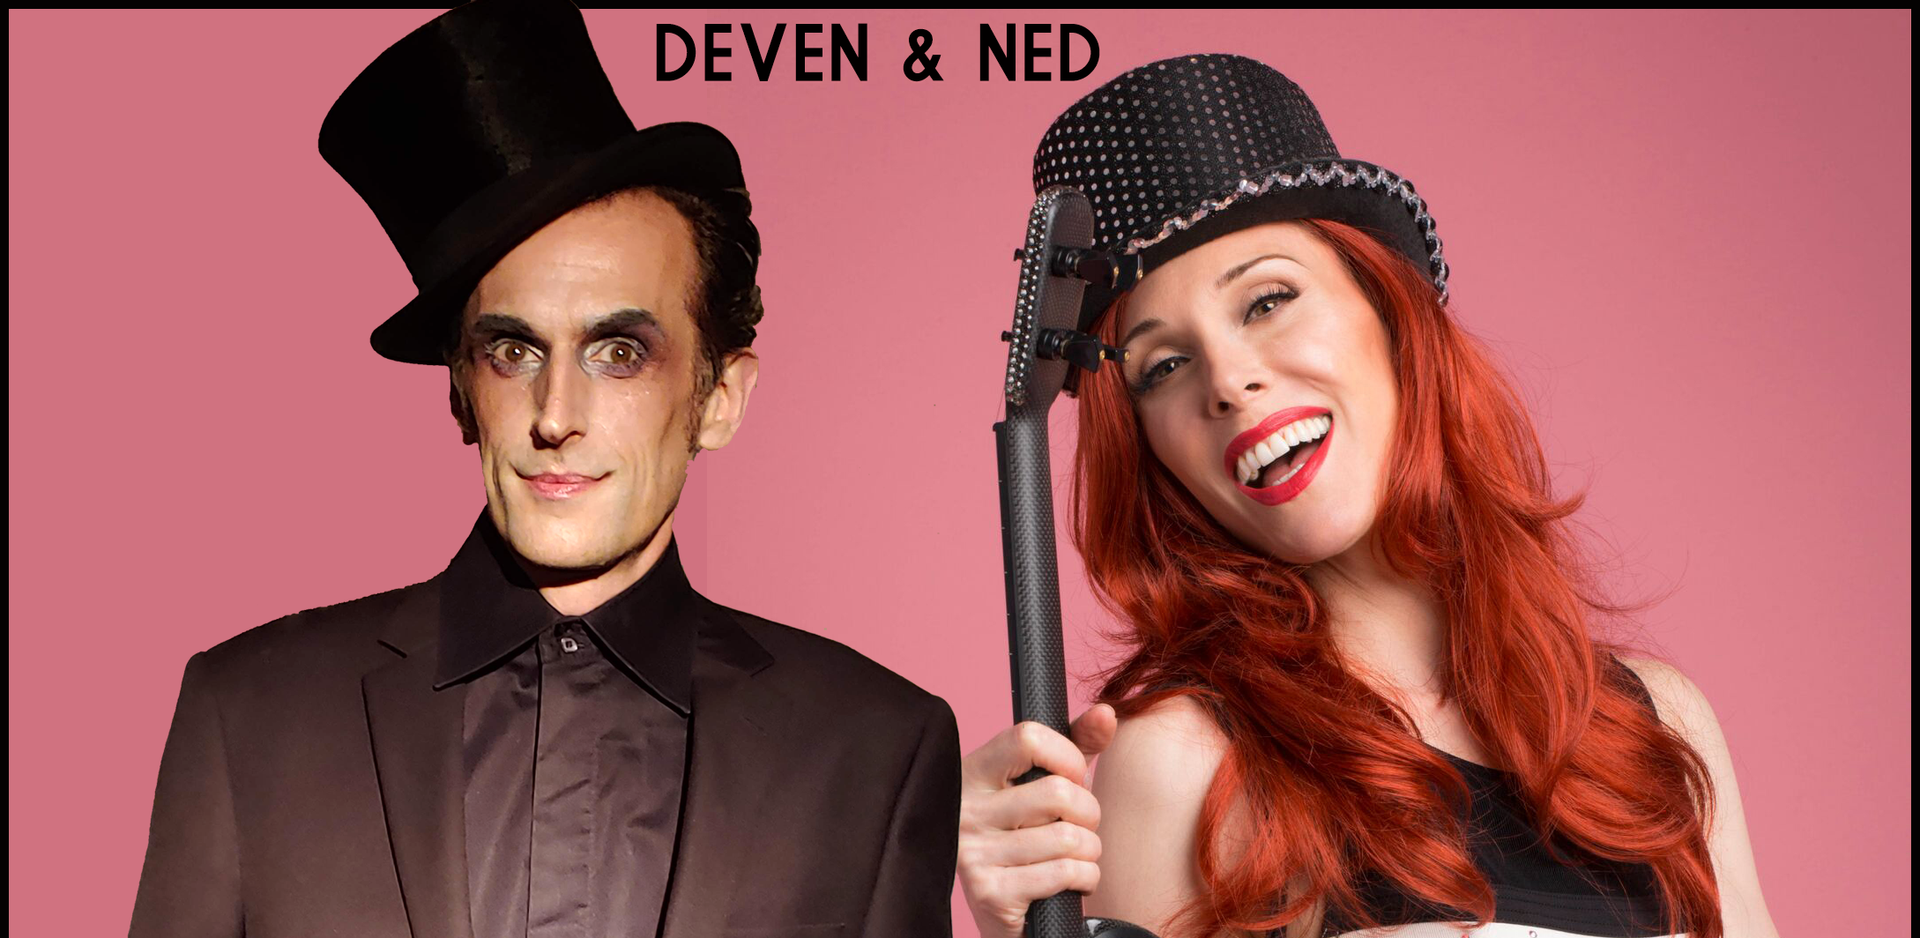 deven ned show poster.png